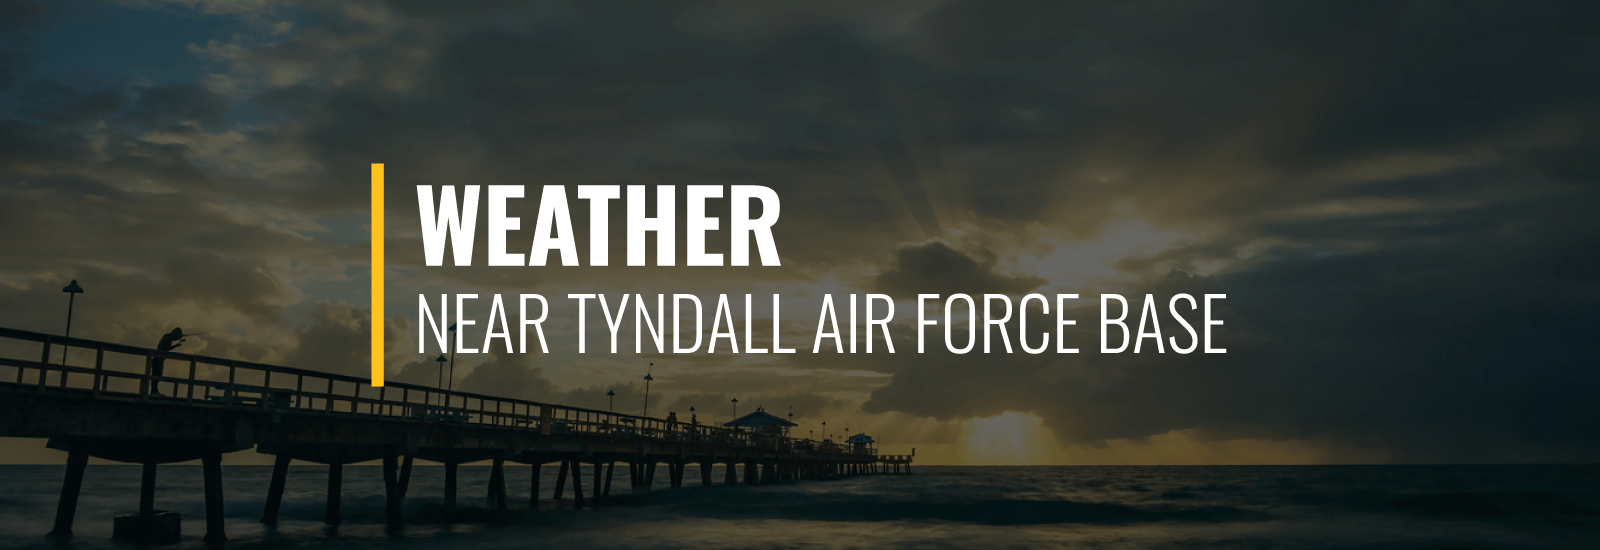 Tyndall AFB Weather